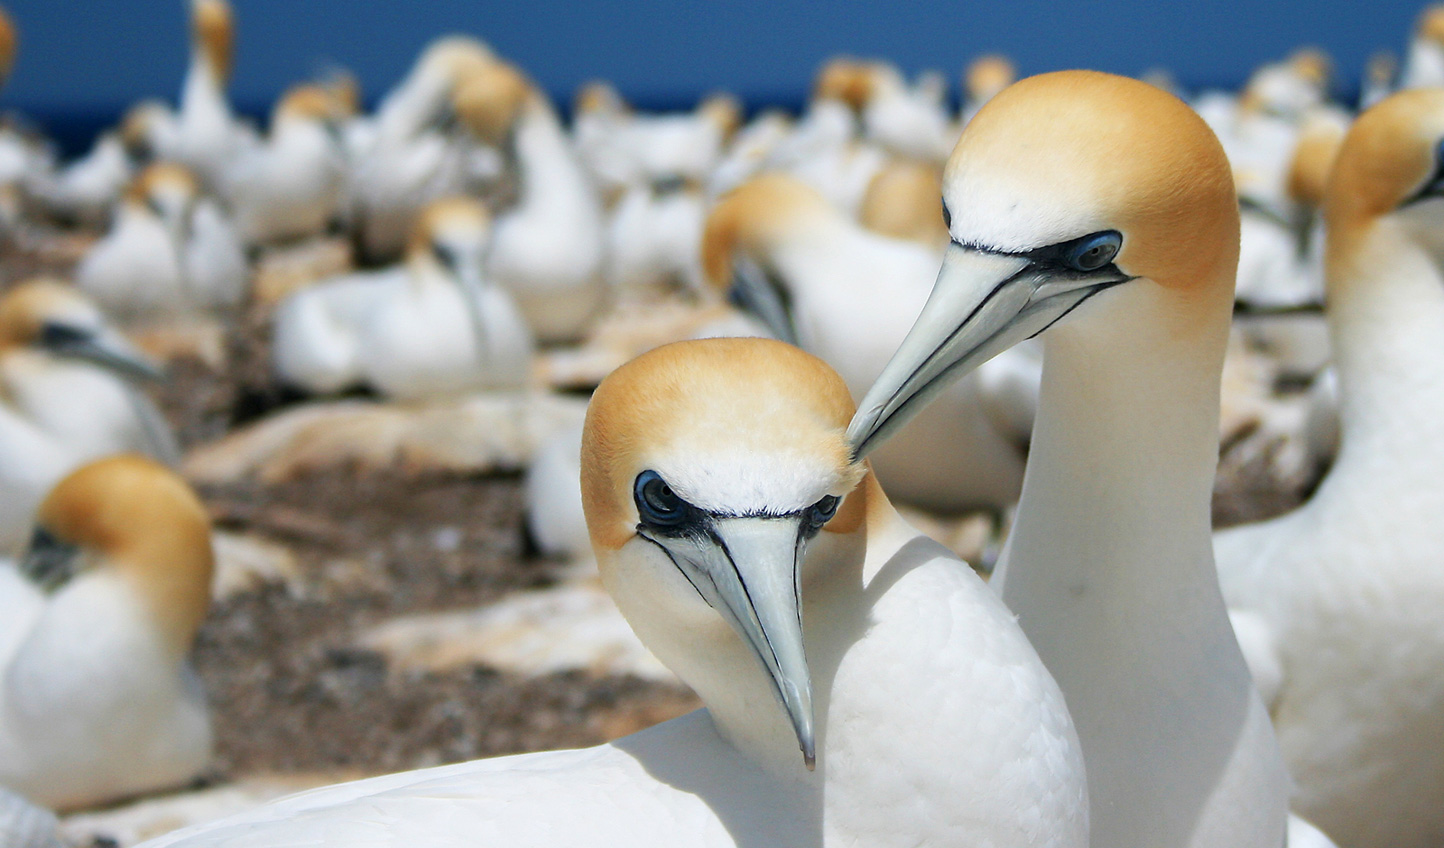 Get to know the local gannet colony at Cape Kidnappers